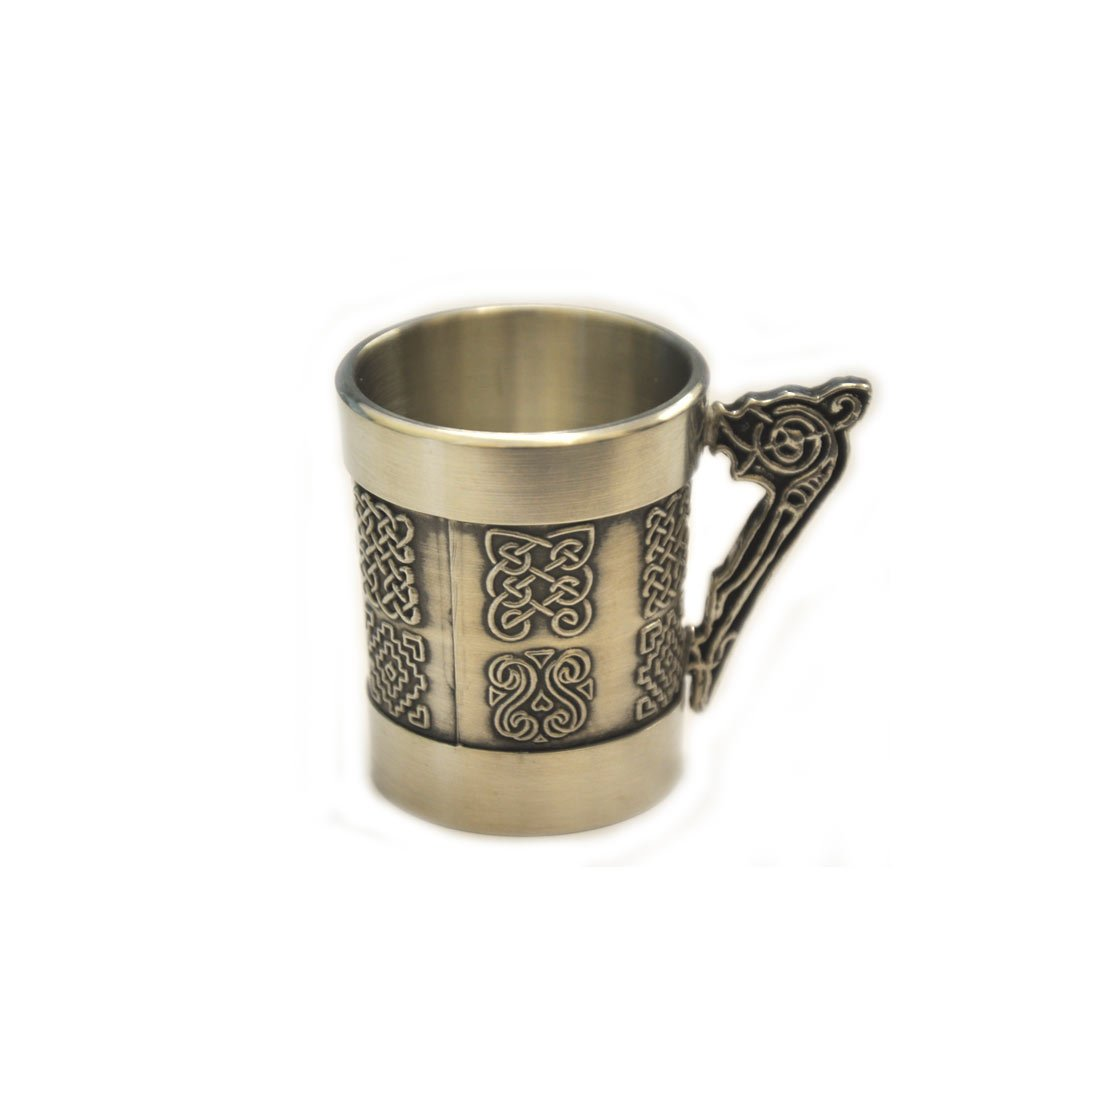 Mullingar Pewter Whiskey Measure With Celtic Handle And Celtic Design